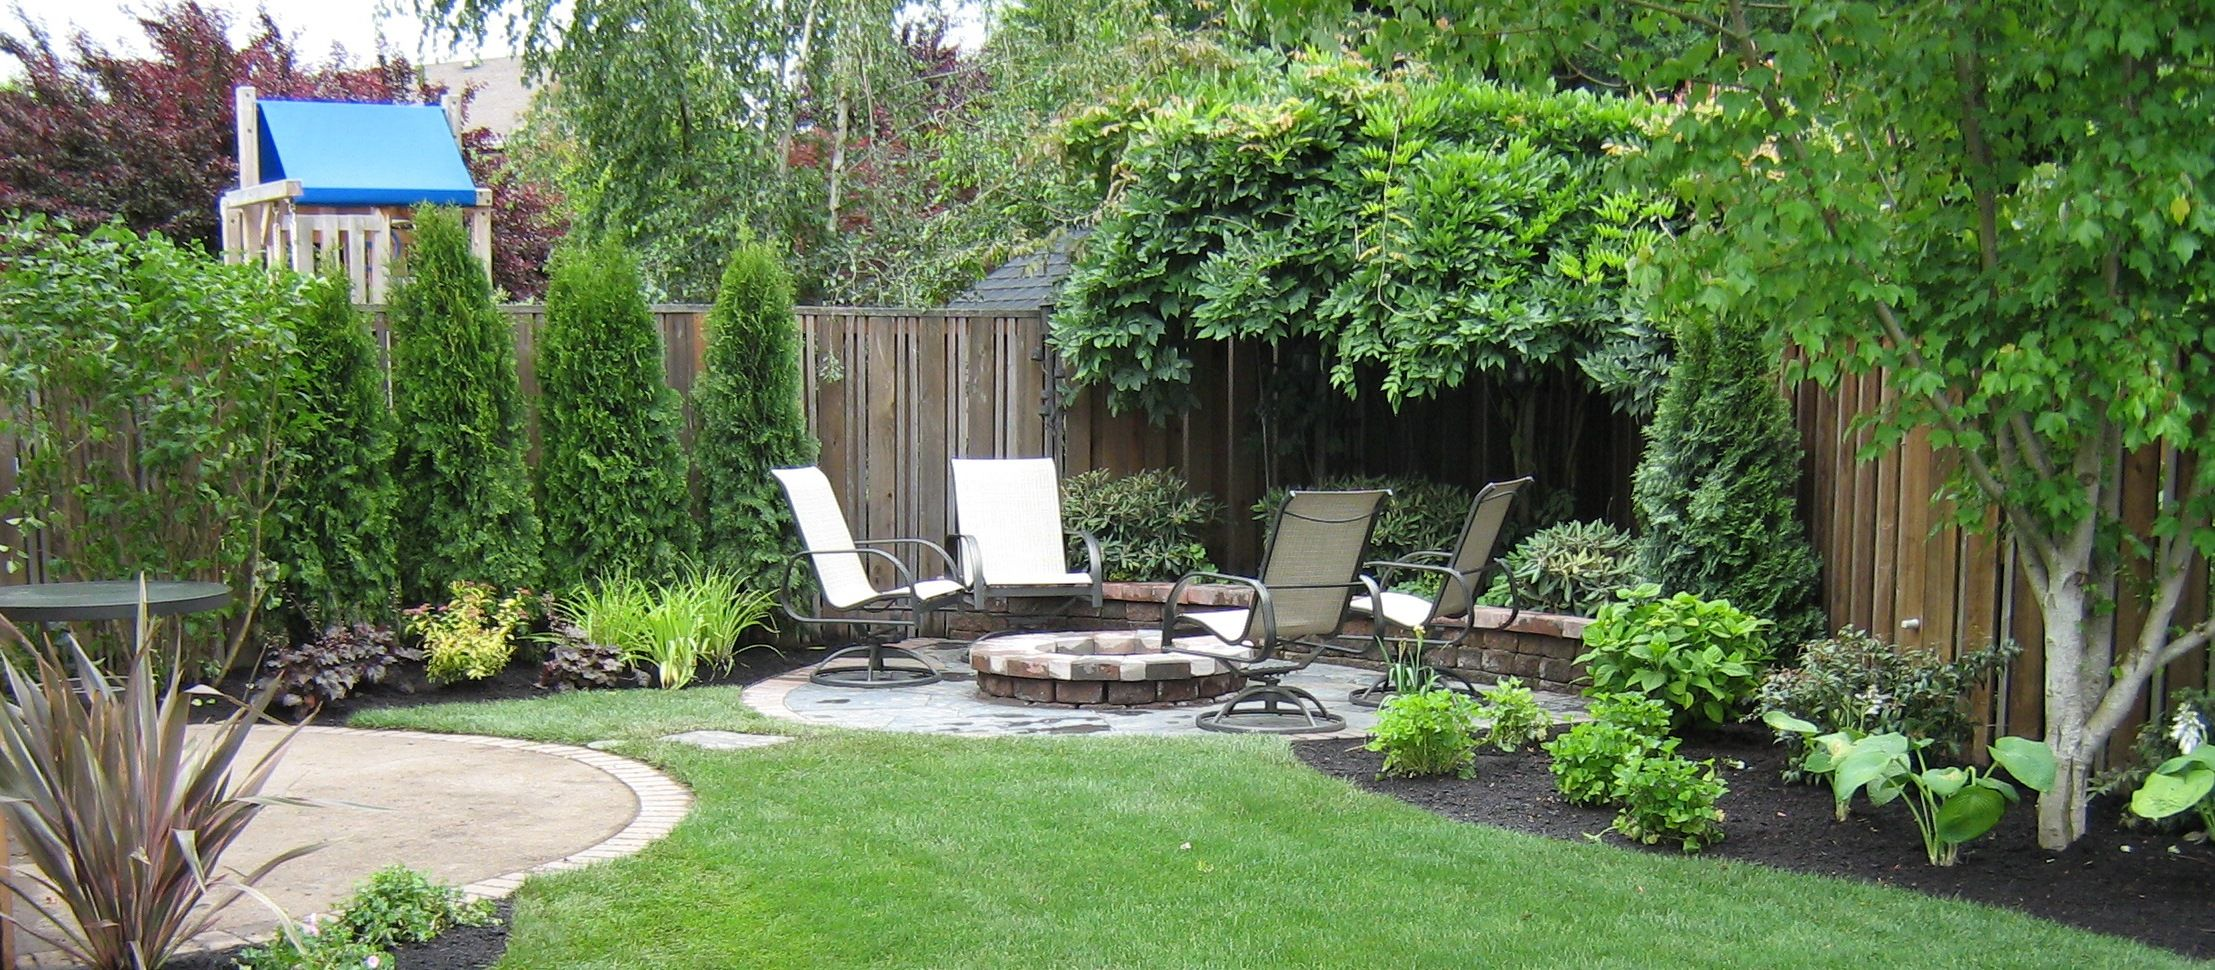 Small backyard landscaping ideas photos garden design for Small backyard plans